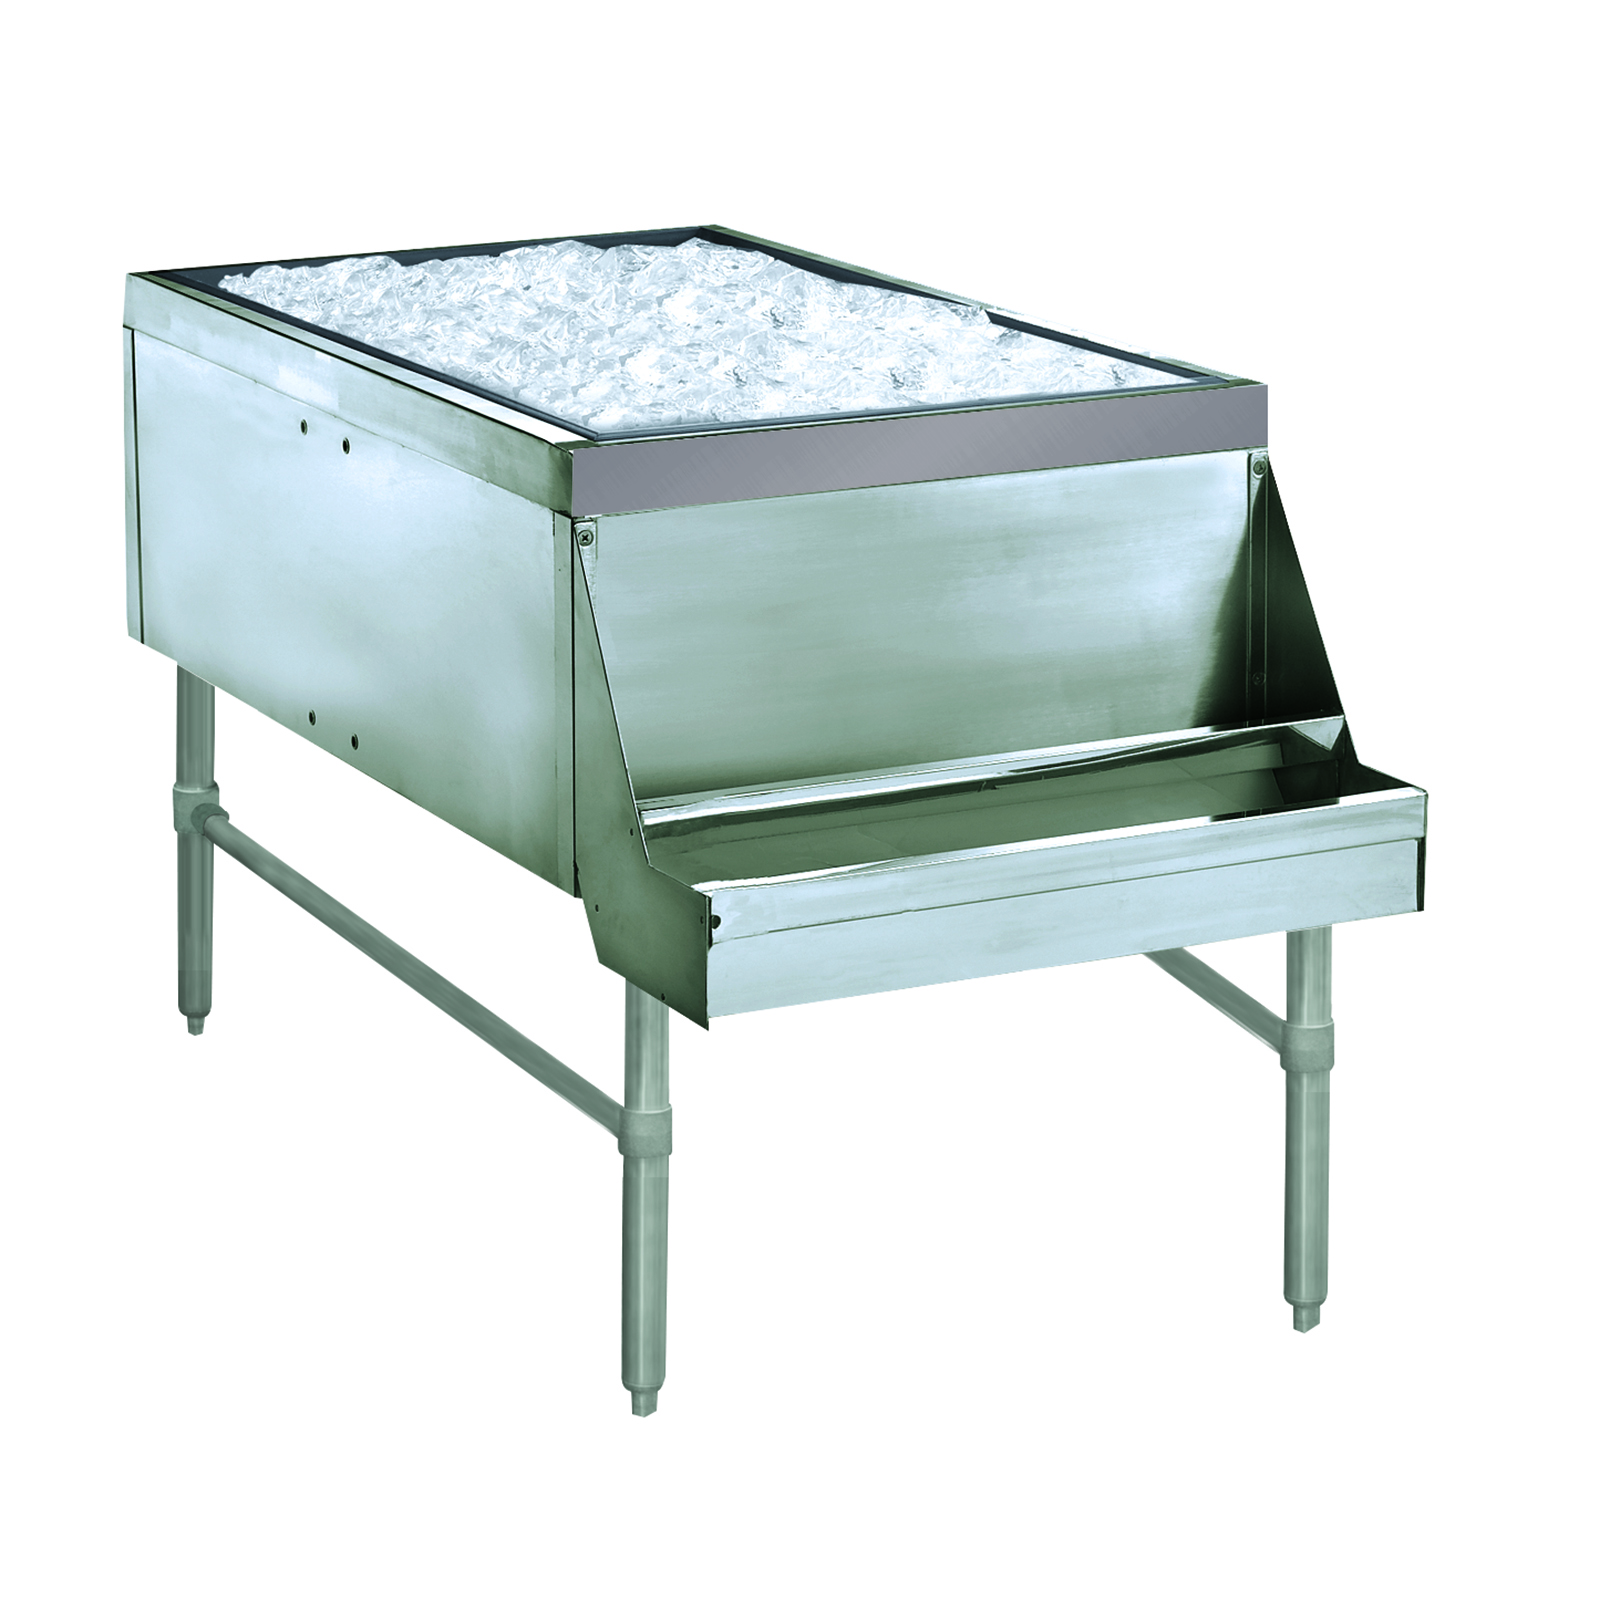 Advance Tabco PRPT-2442-10 underbar ice bin/cocktail station, pass-thru